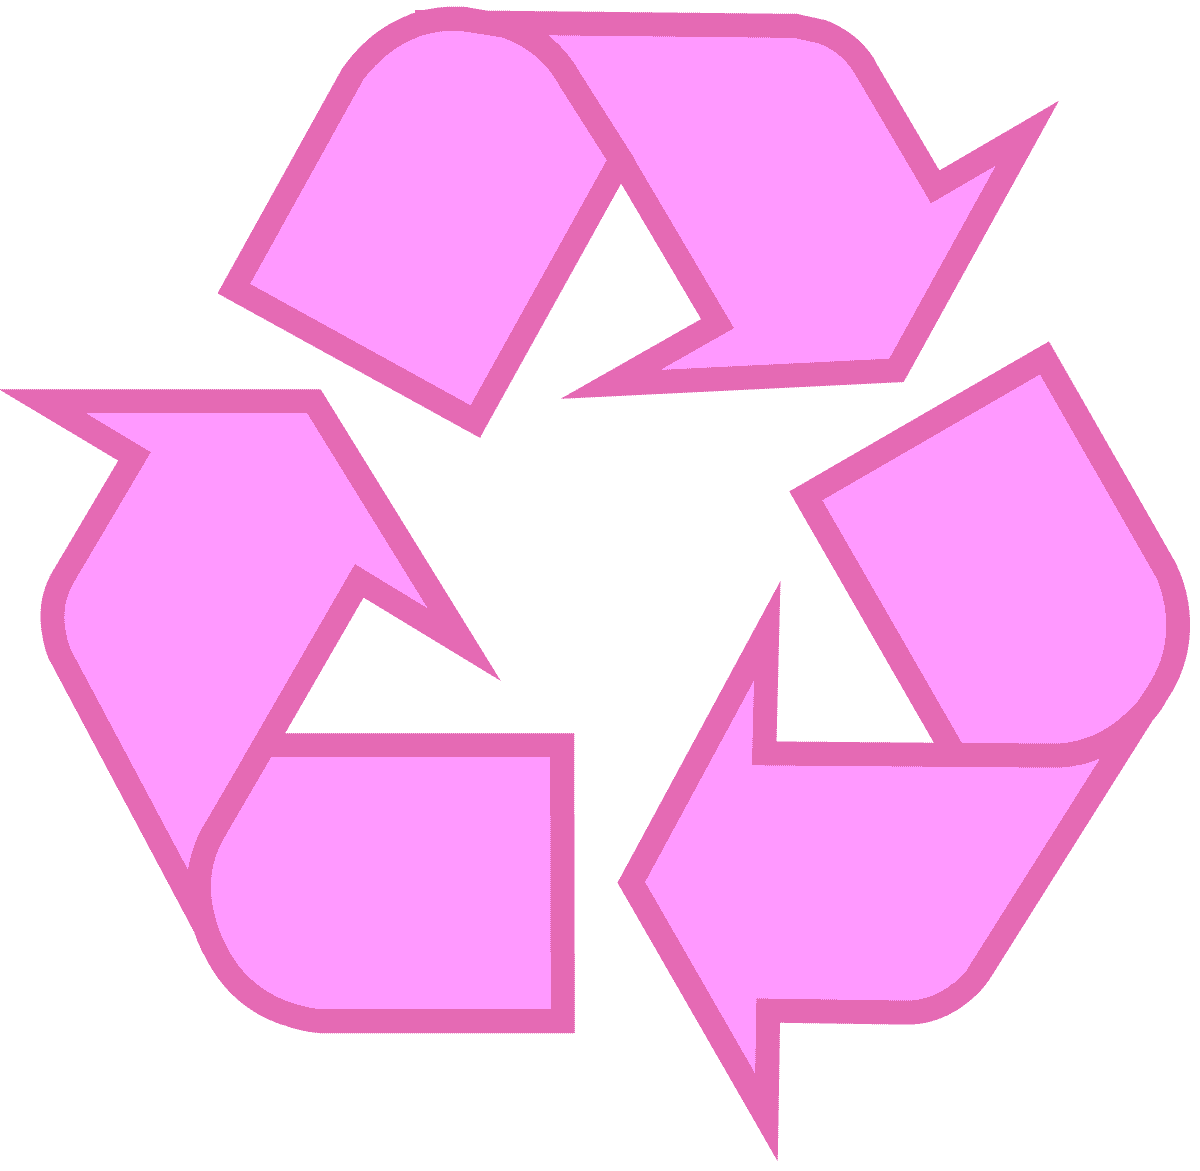 recycling-symbol-icon-outline-solid-pink